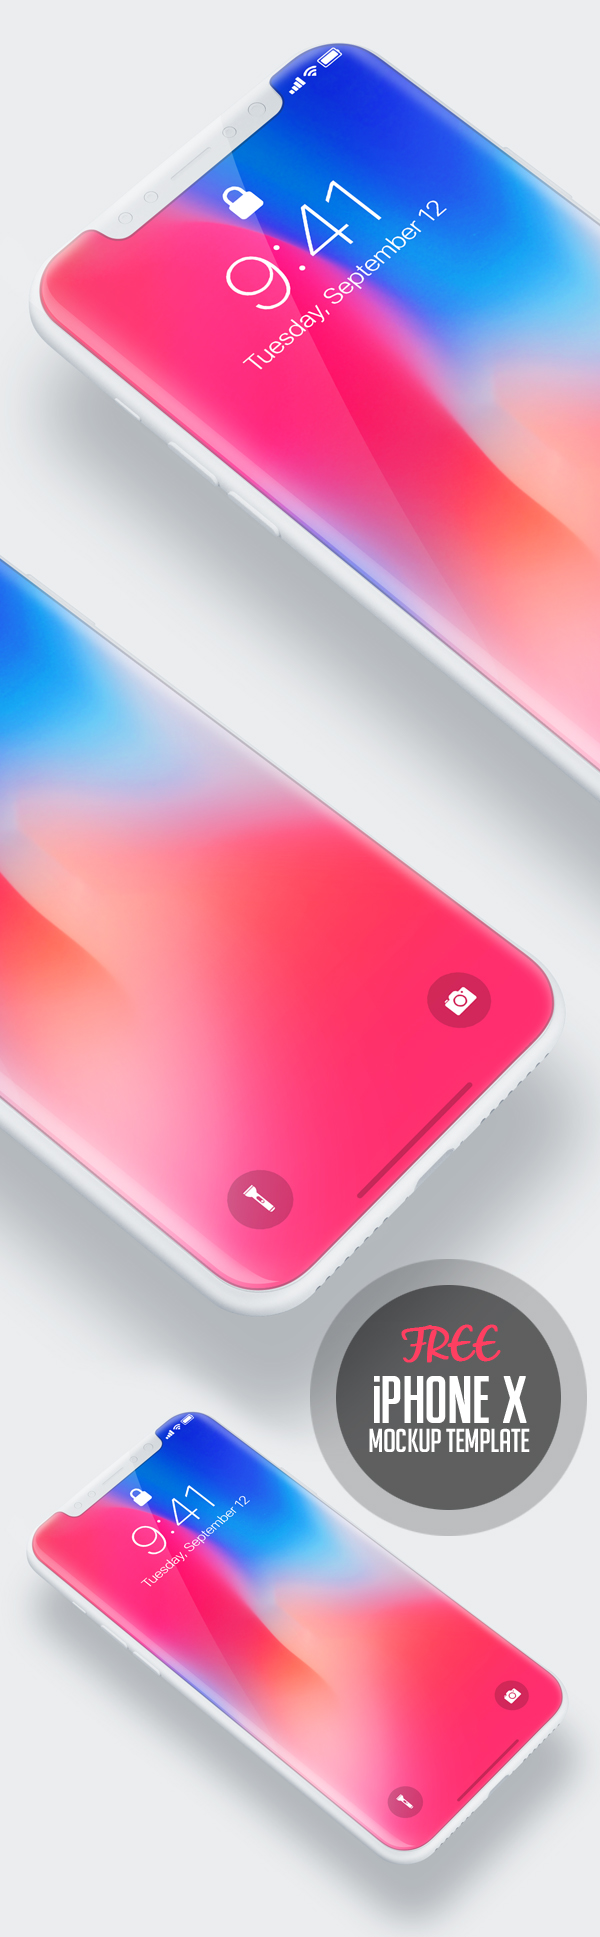 graphic design phone wallpapers